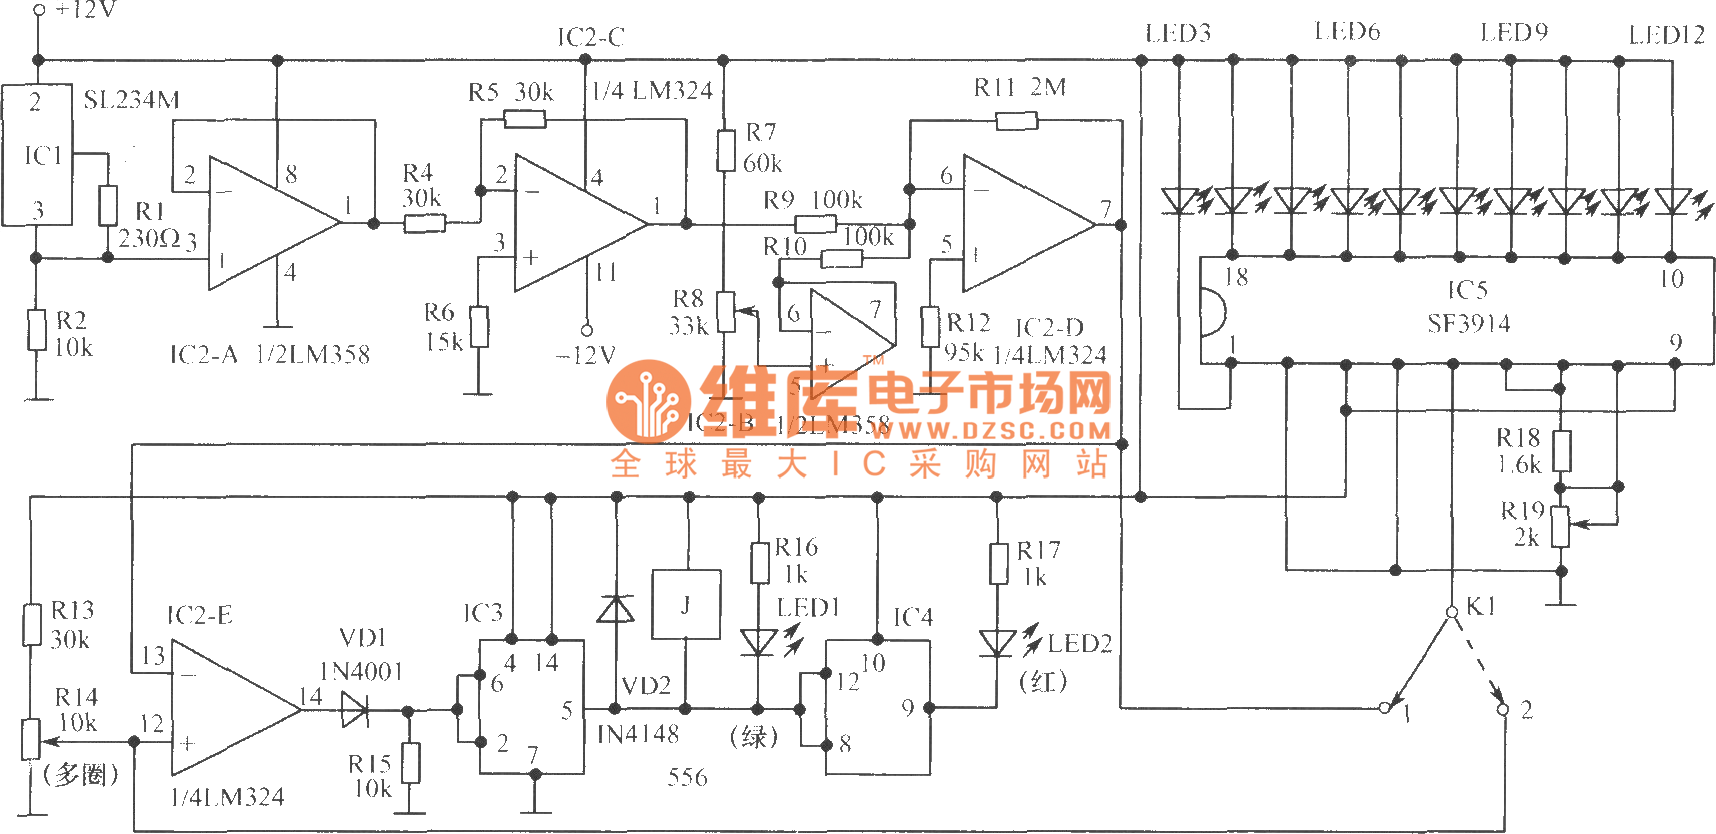 Analog Temperature Controller Circuit Control Telephonerelatedcircuit Electricalequipmentcircuit